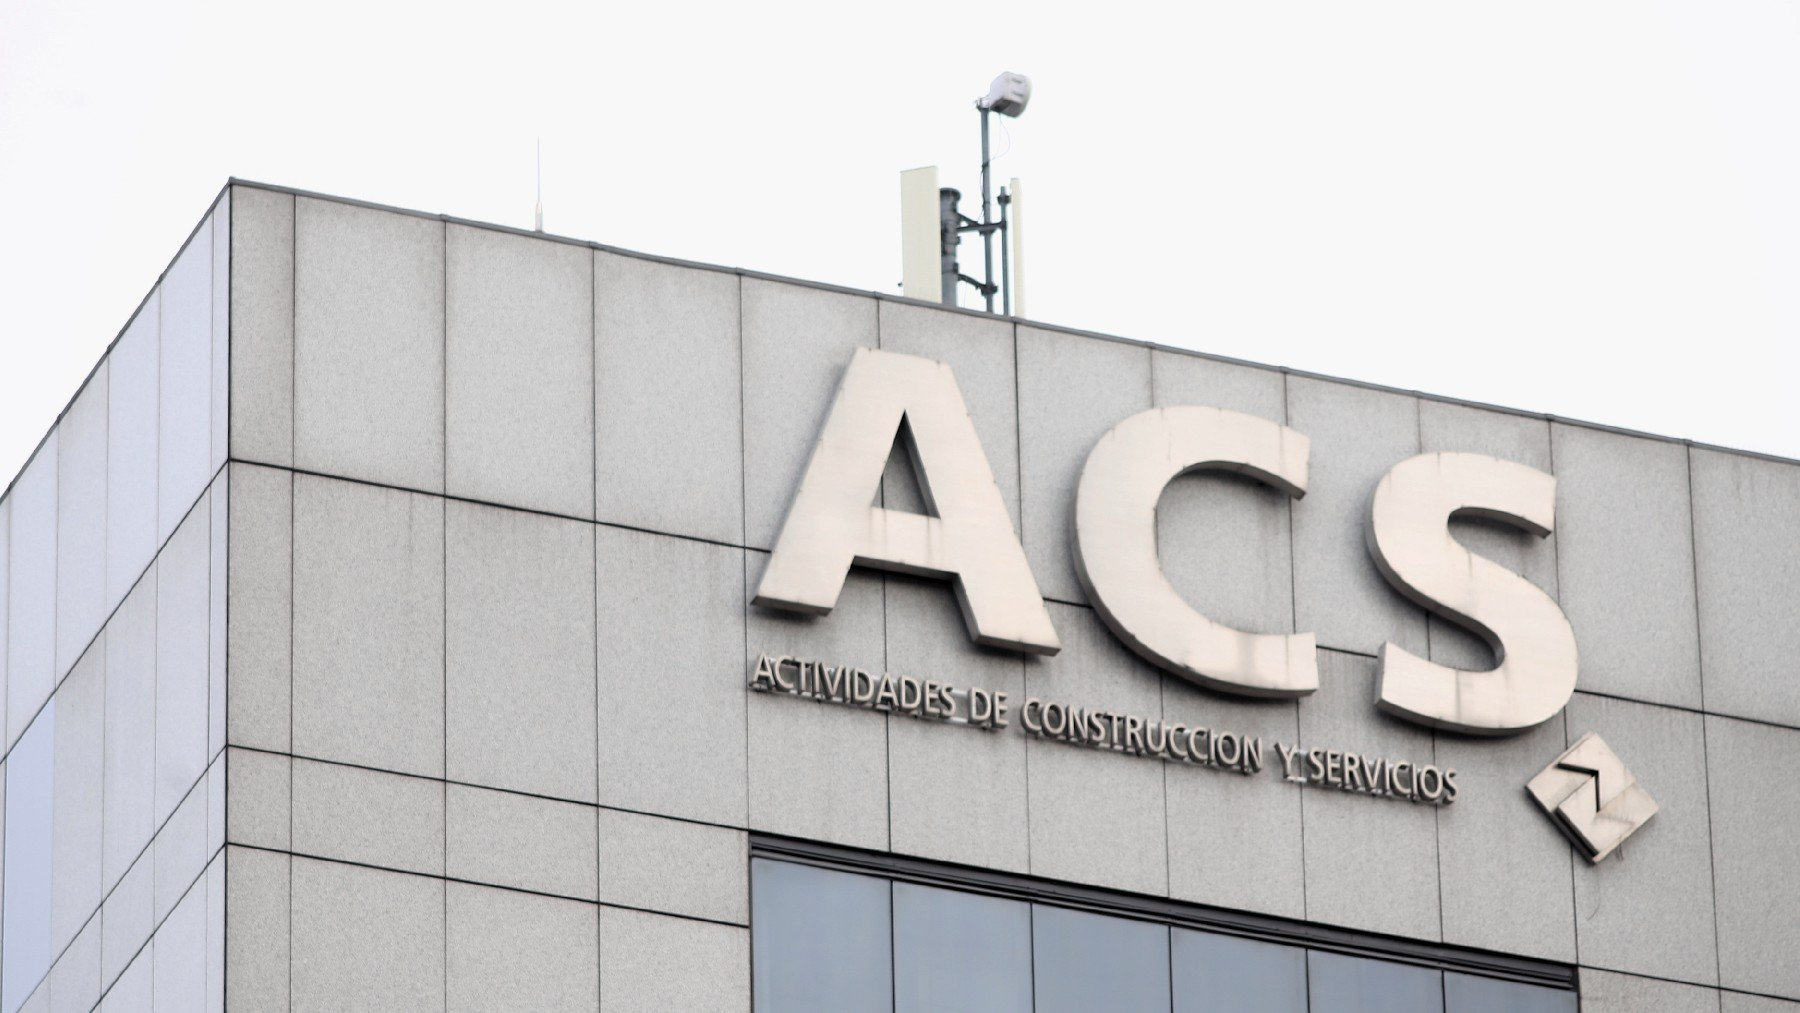 ACS and Acciona win the construction of a new airport in Australia for 164 million